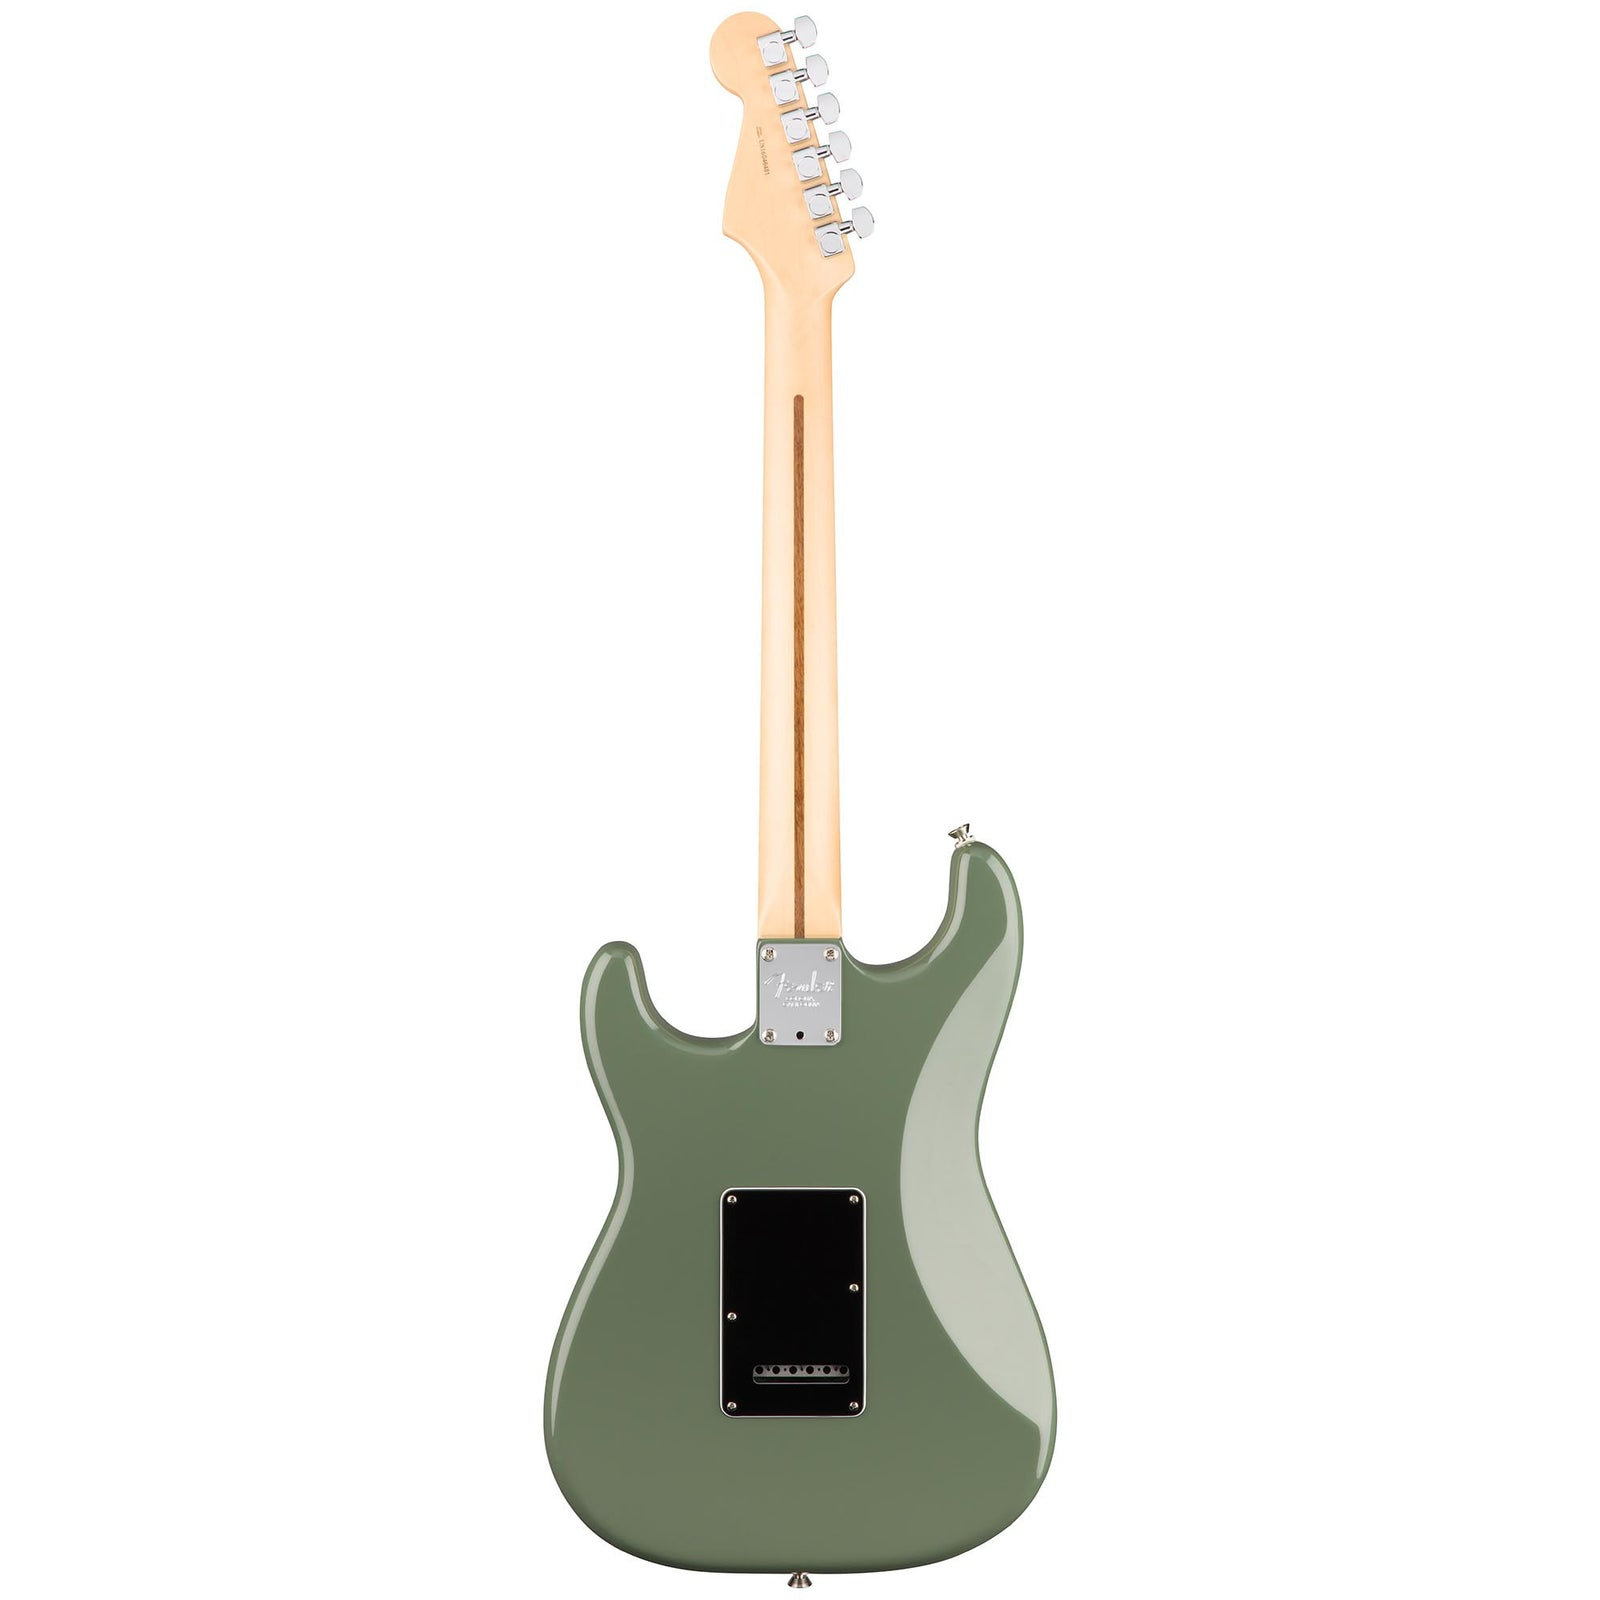 Fender American Professional Stratocaster - Antique Olive - Rosewood